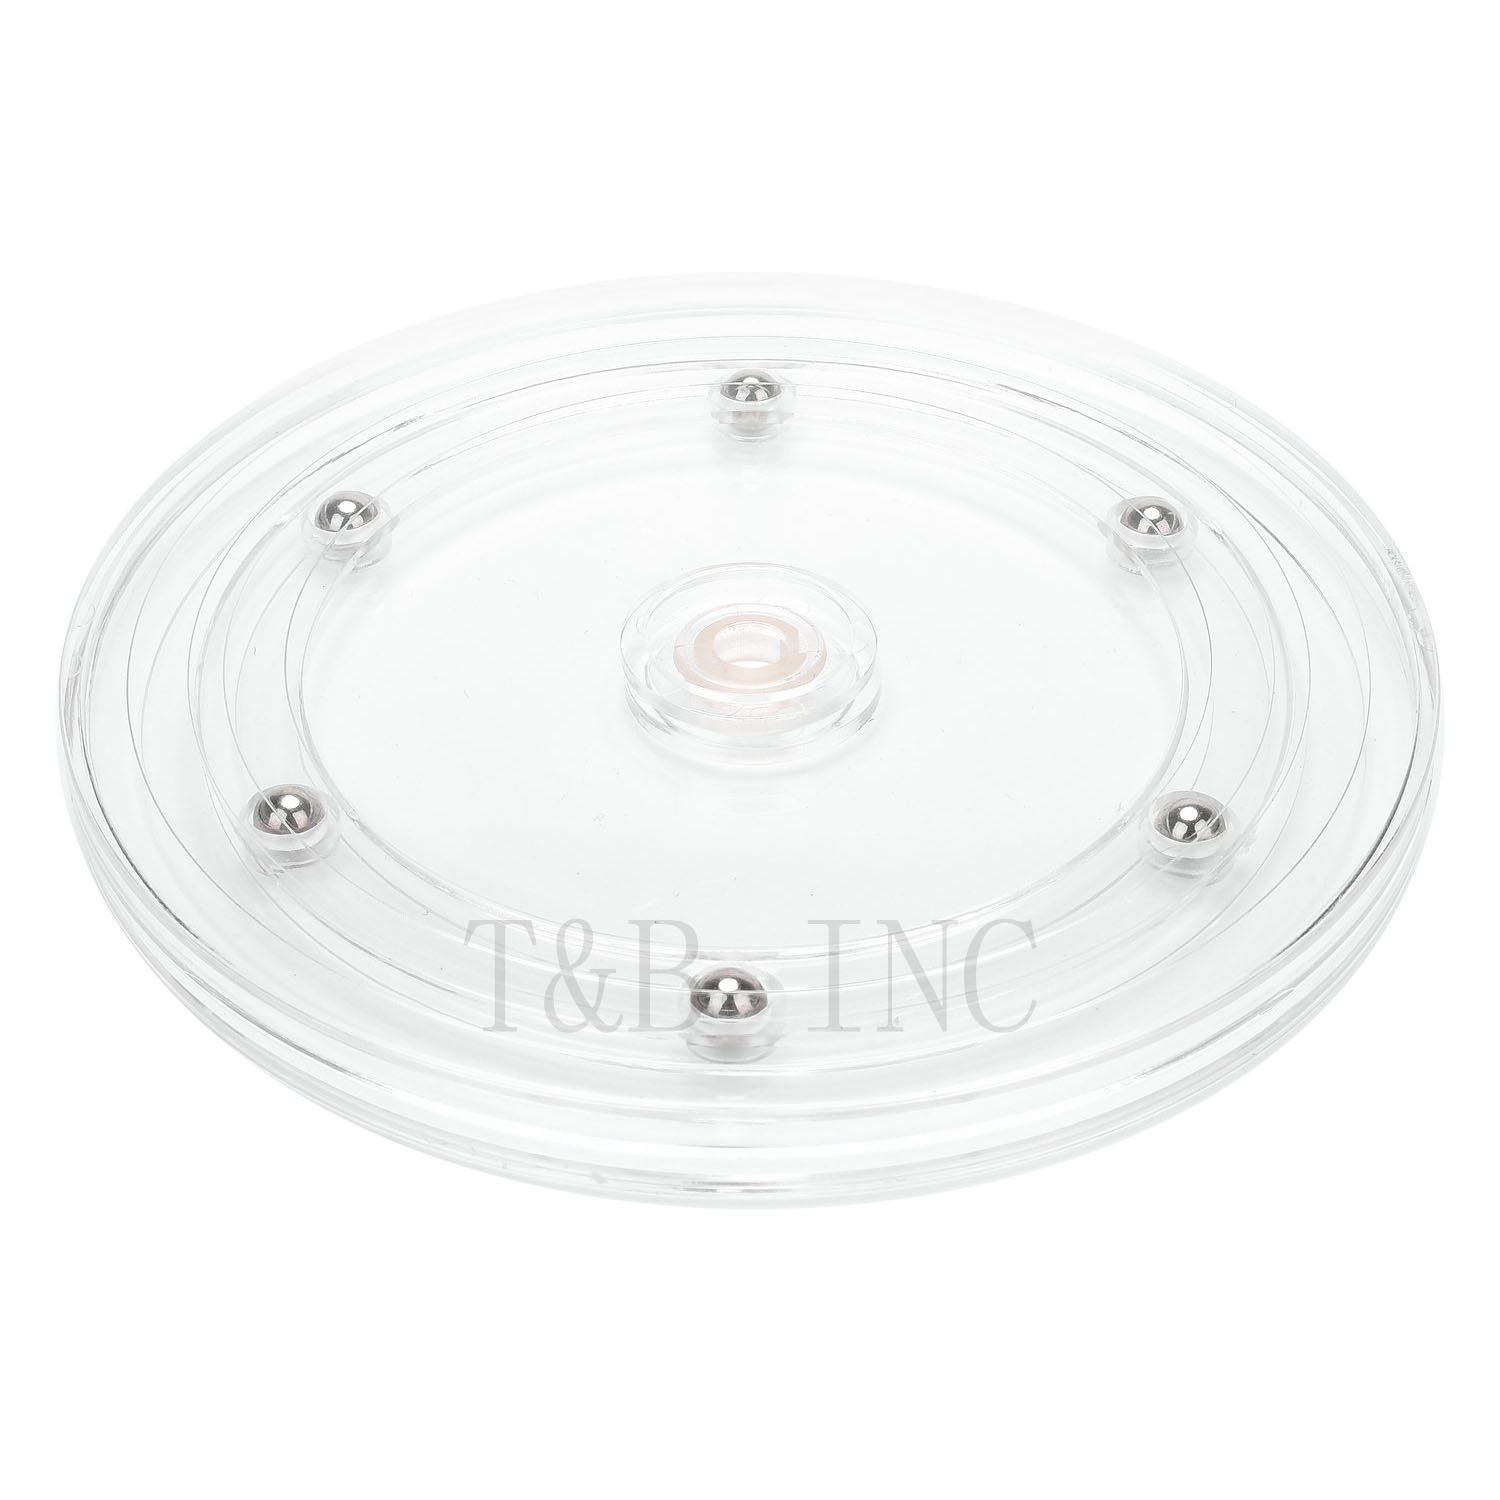 T&B 6 inch Lazy Susan Turntable